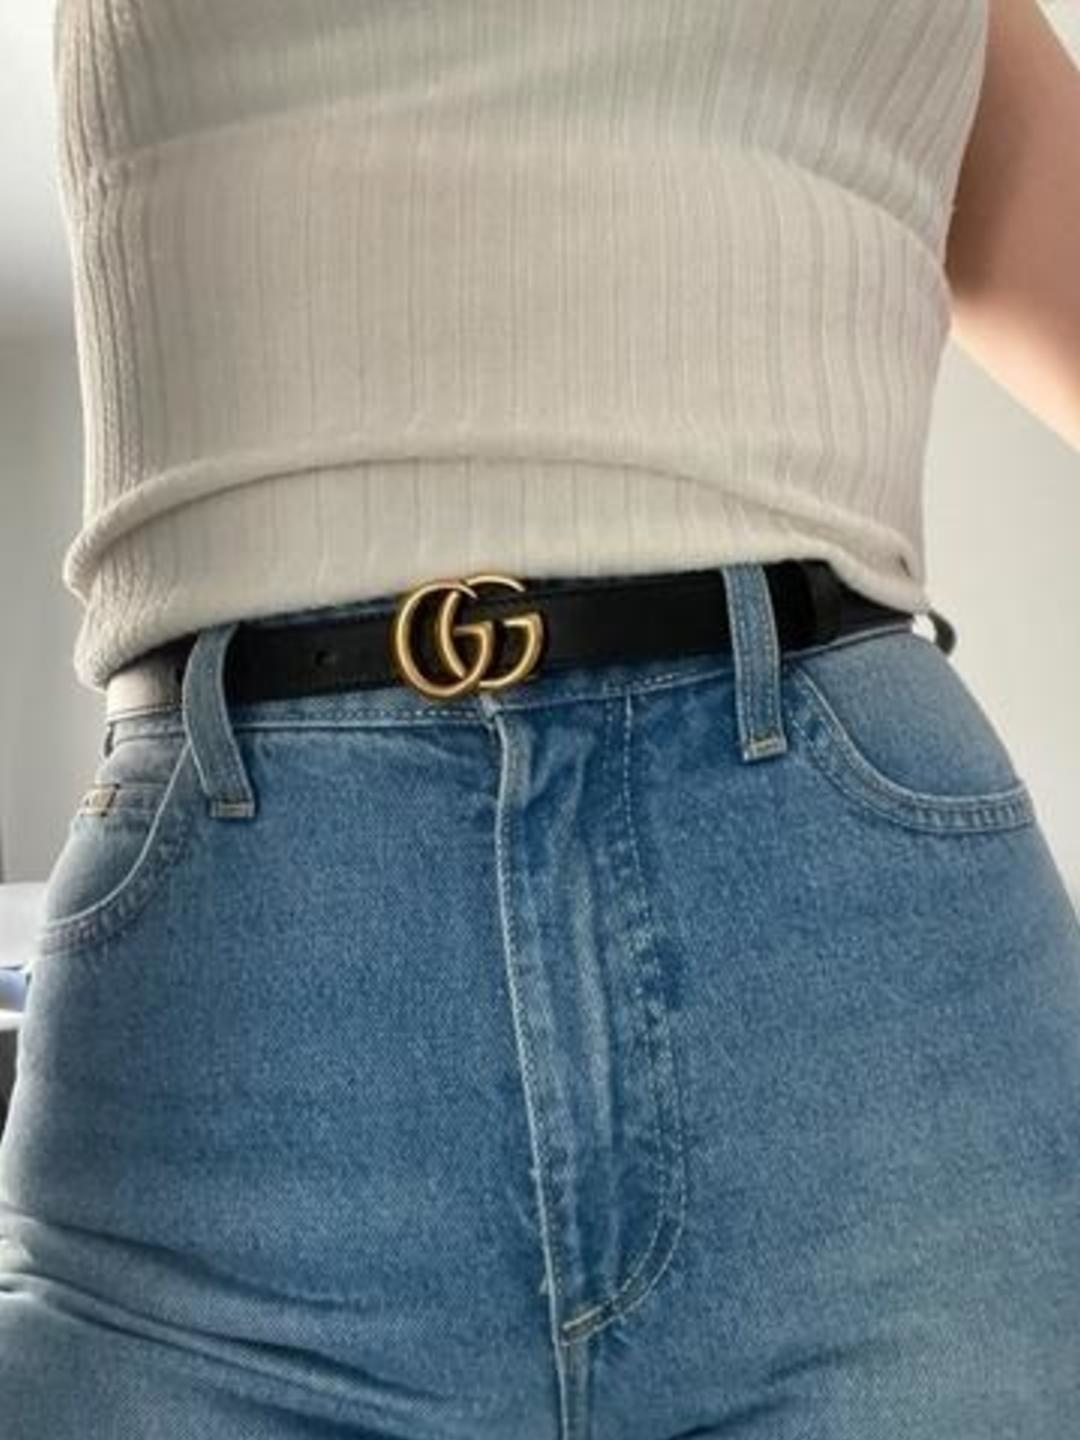 Women's belts - GUCCI photo 1